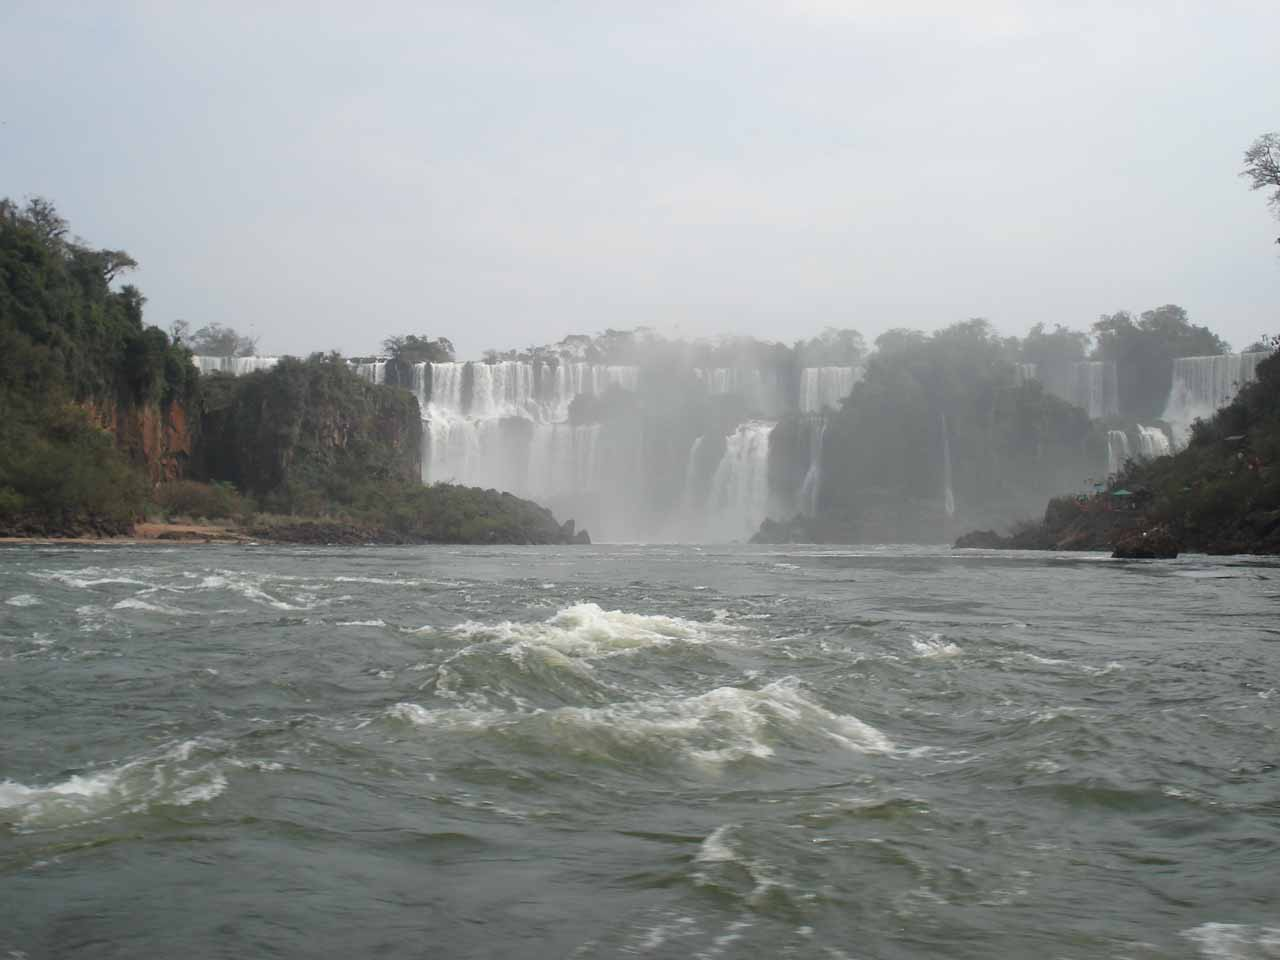 Looking towards the Argentina side while on the boat